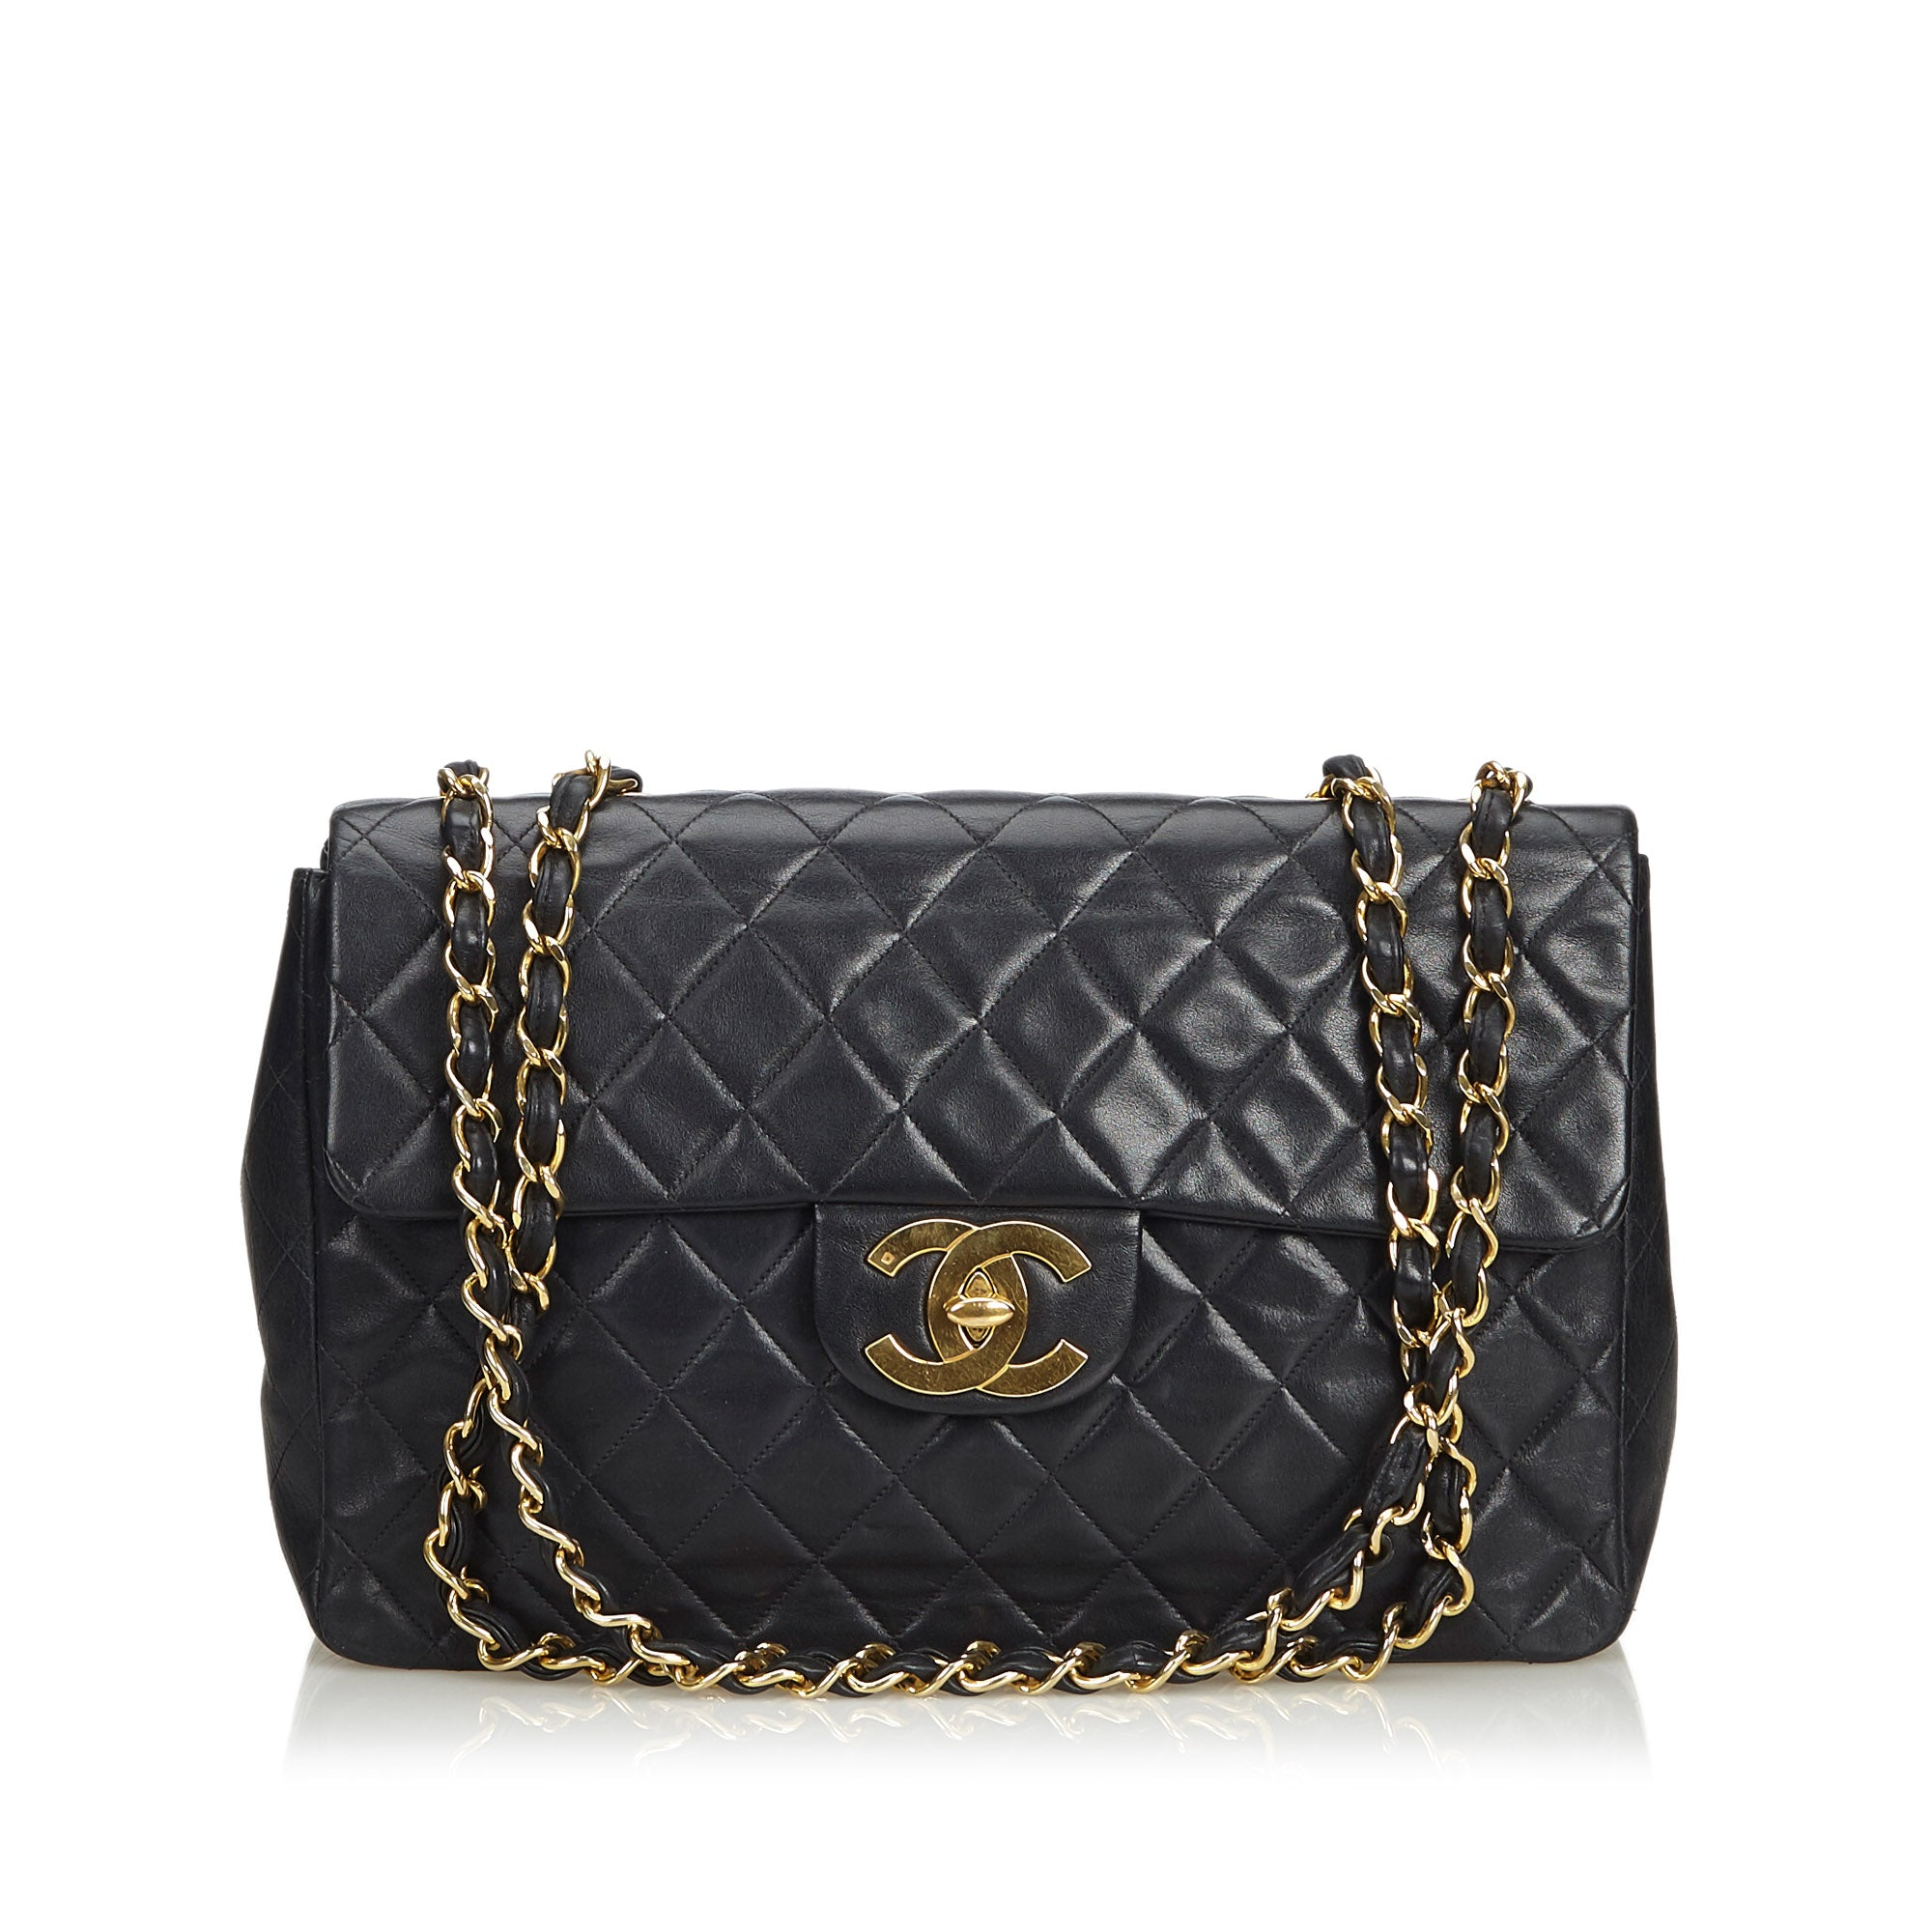 f78b8be839aadd Chanel Black Classic Maxi Lambskin Leather Single Flap Bag